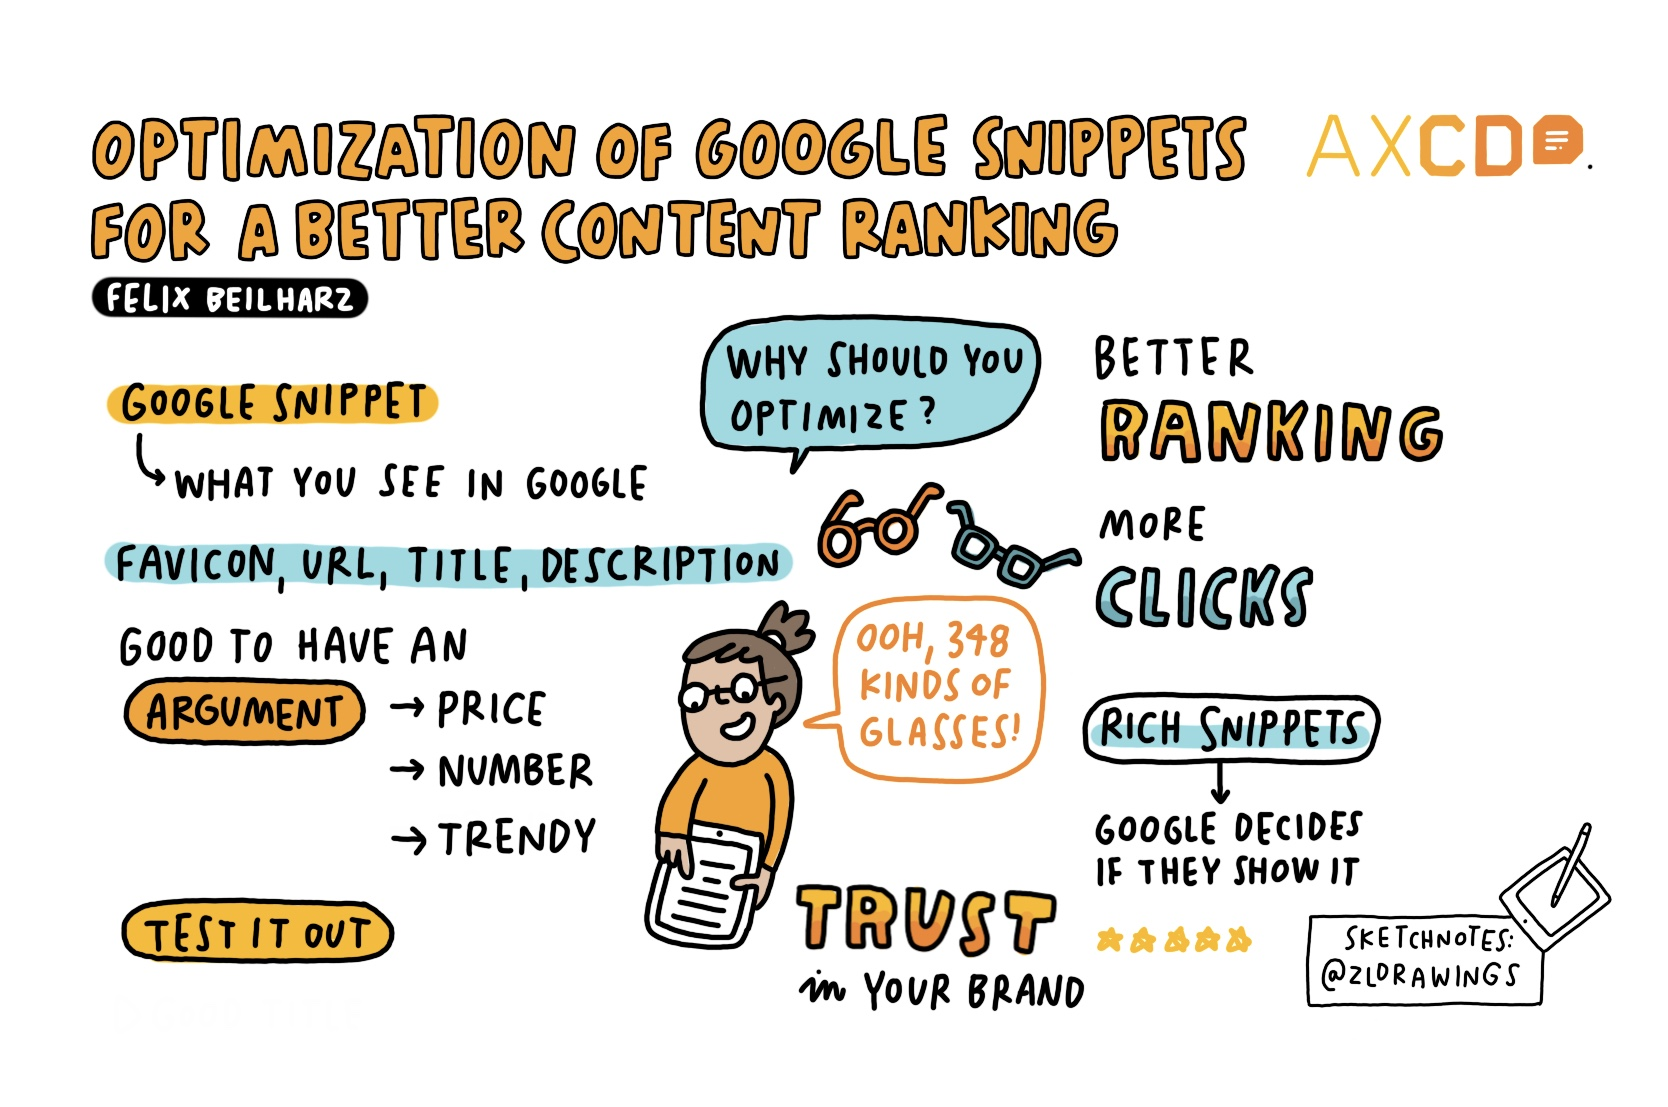 Sketchnote of AXCD talk: optimization of google snippets for a better content ranking